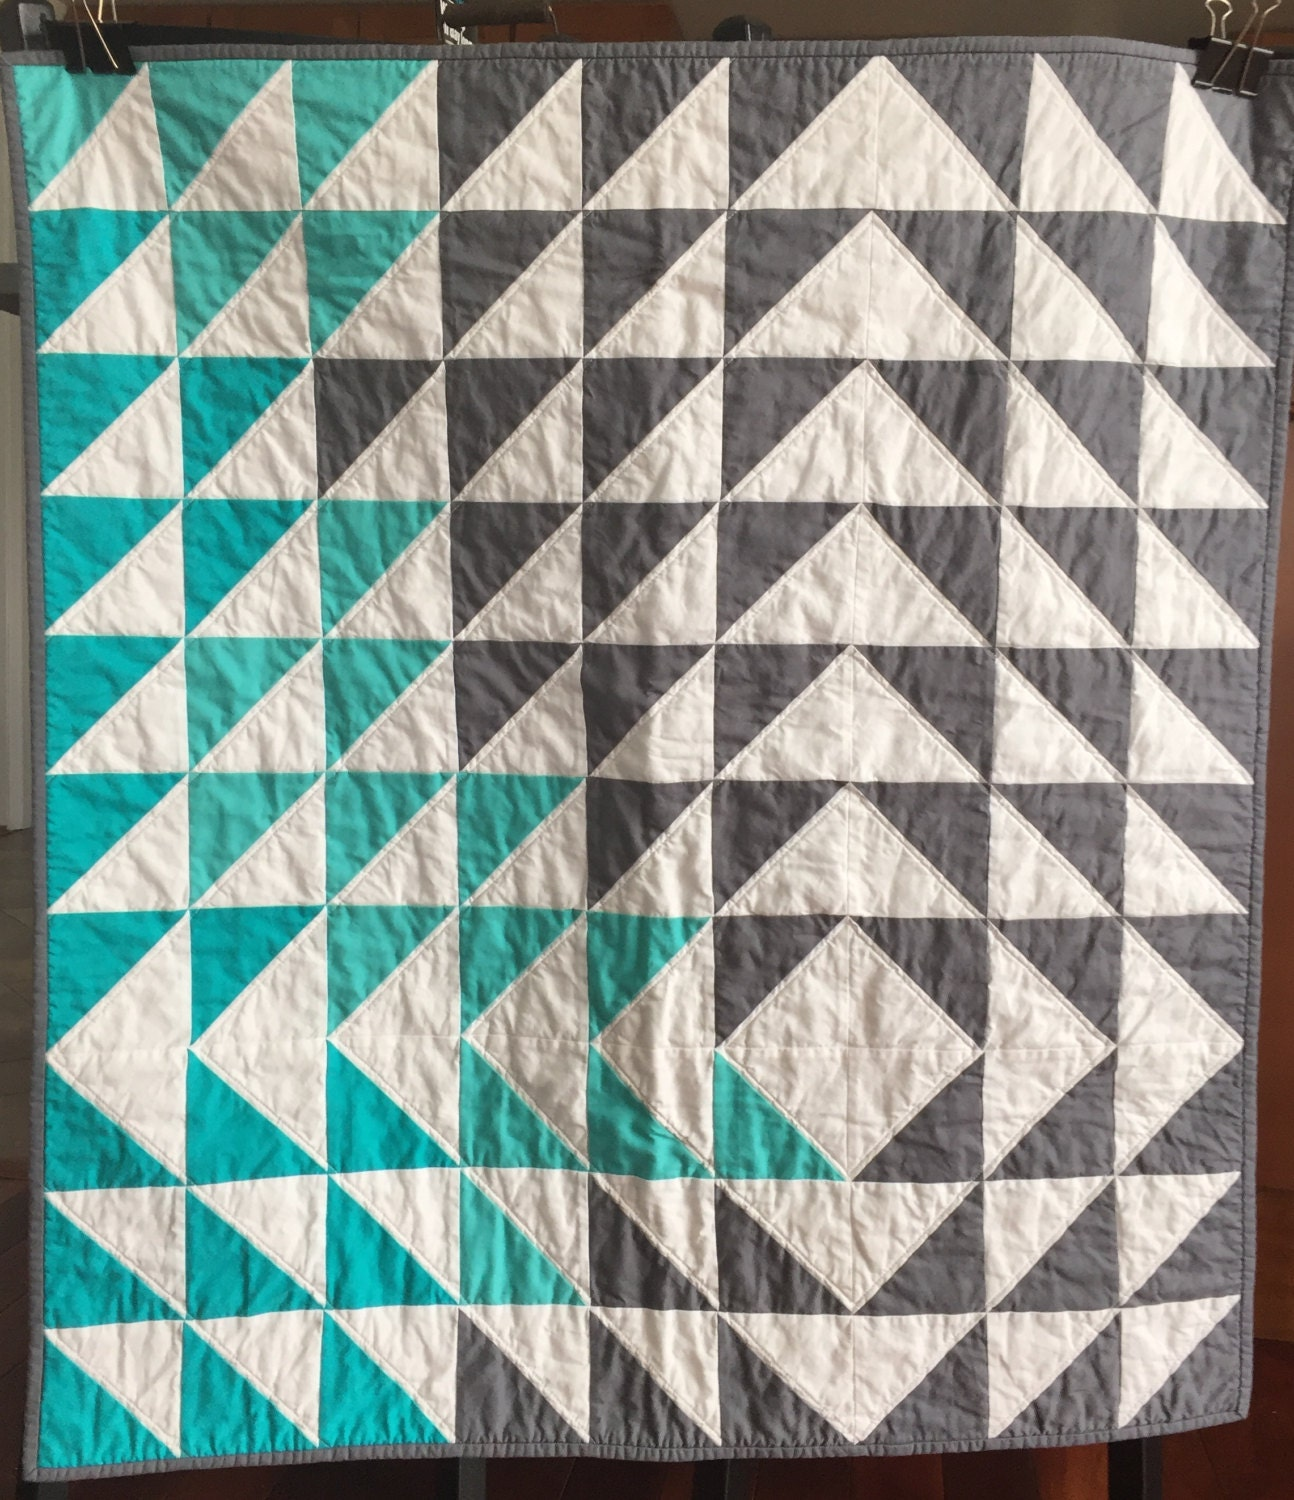 Modern Patchwork Geometric Triangle Quilt Teal Grey White